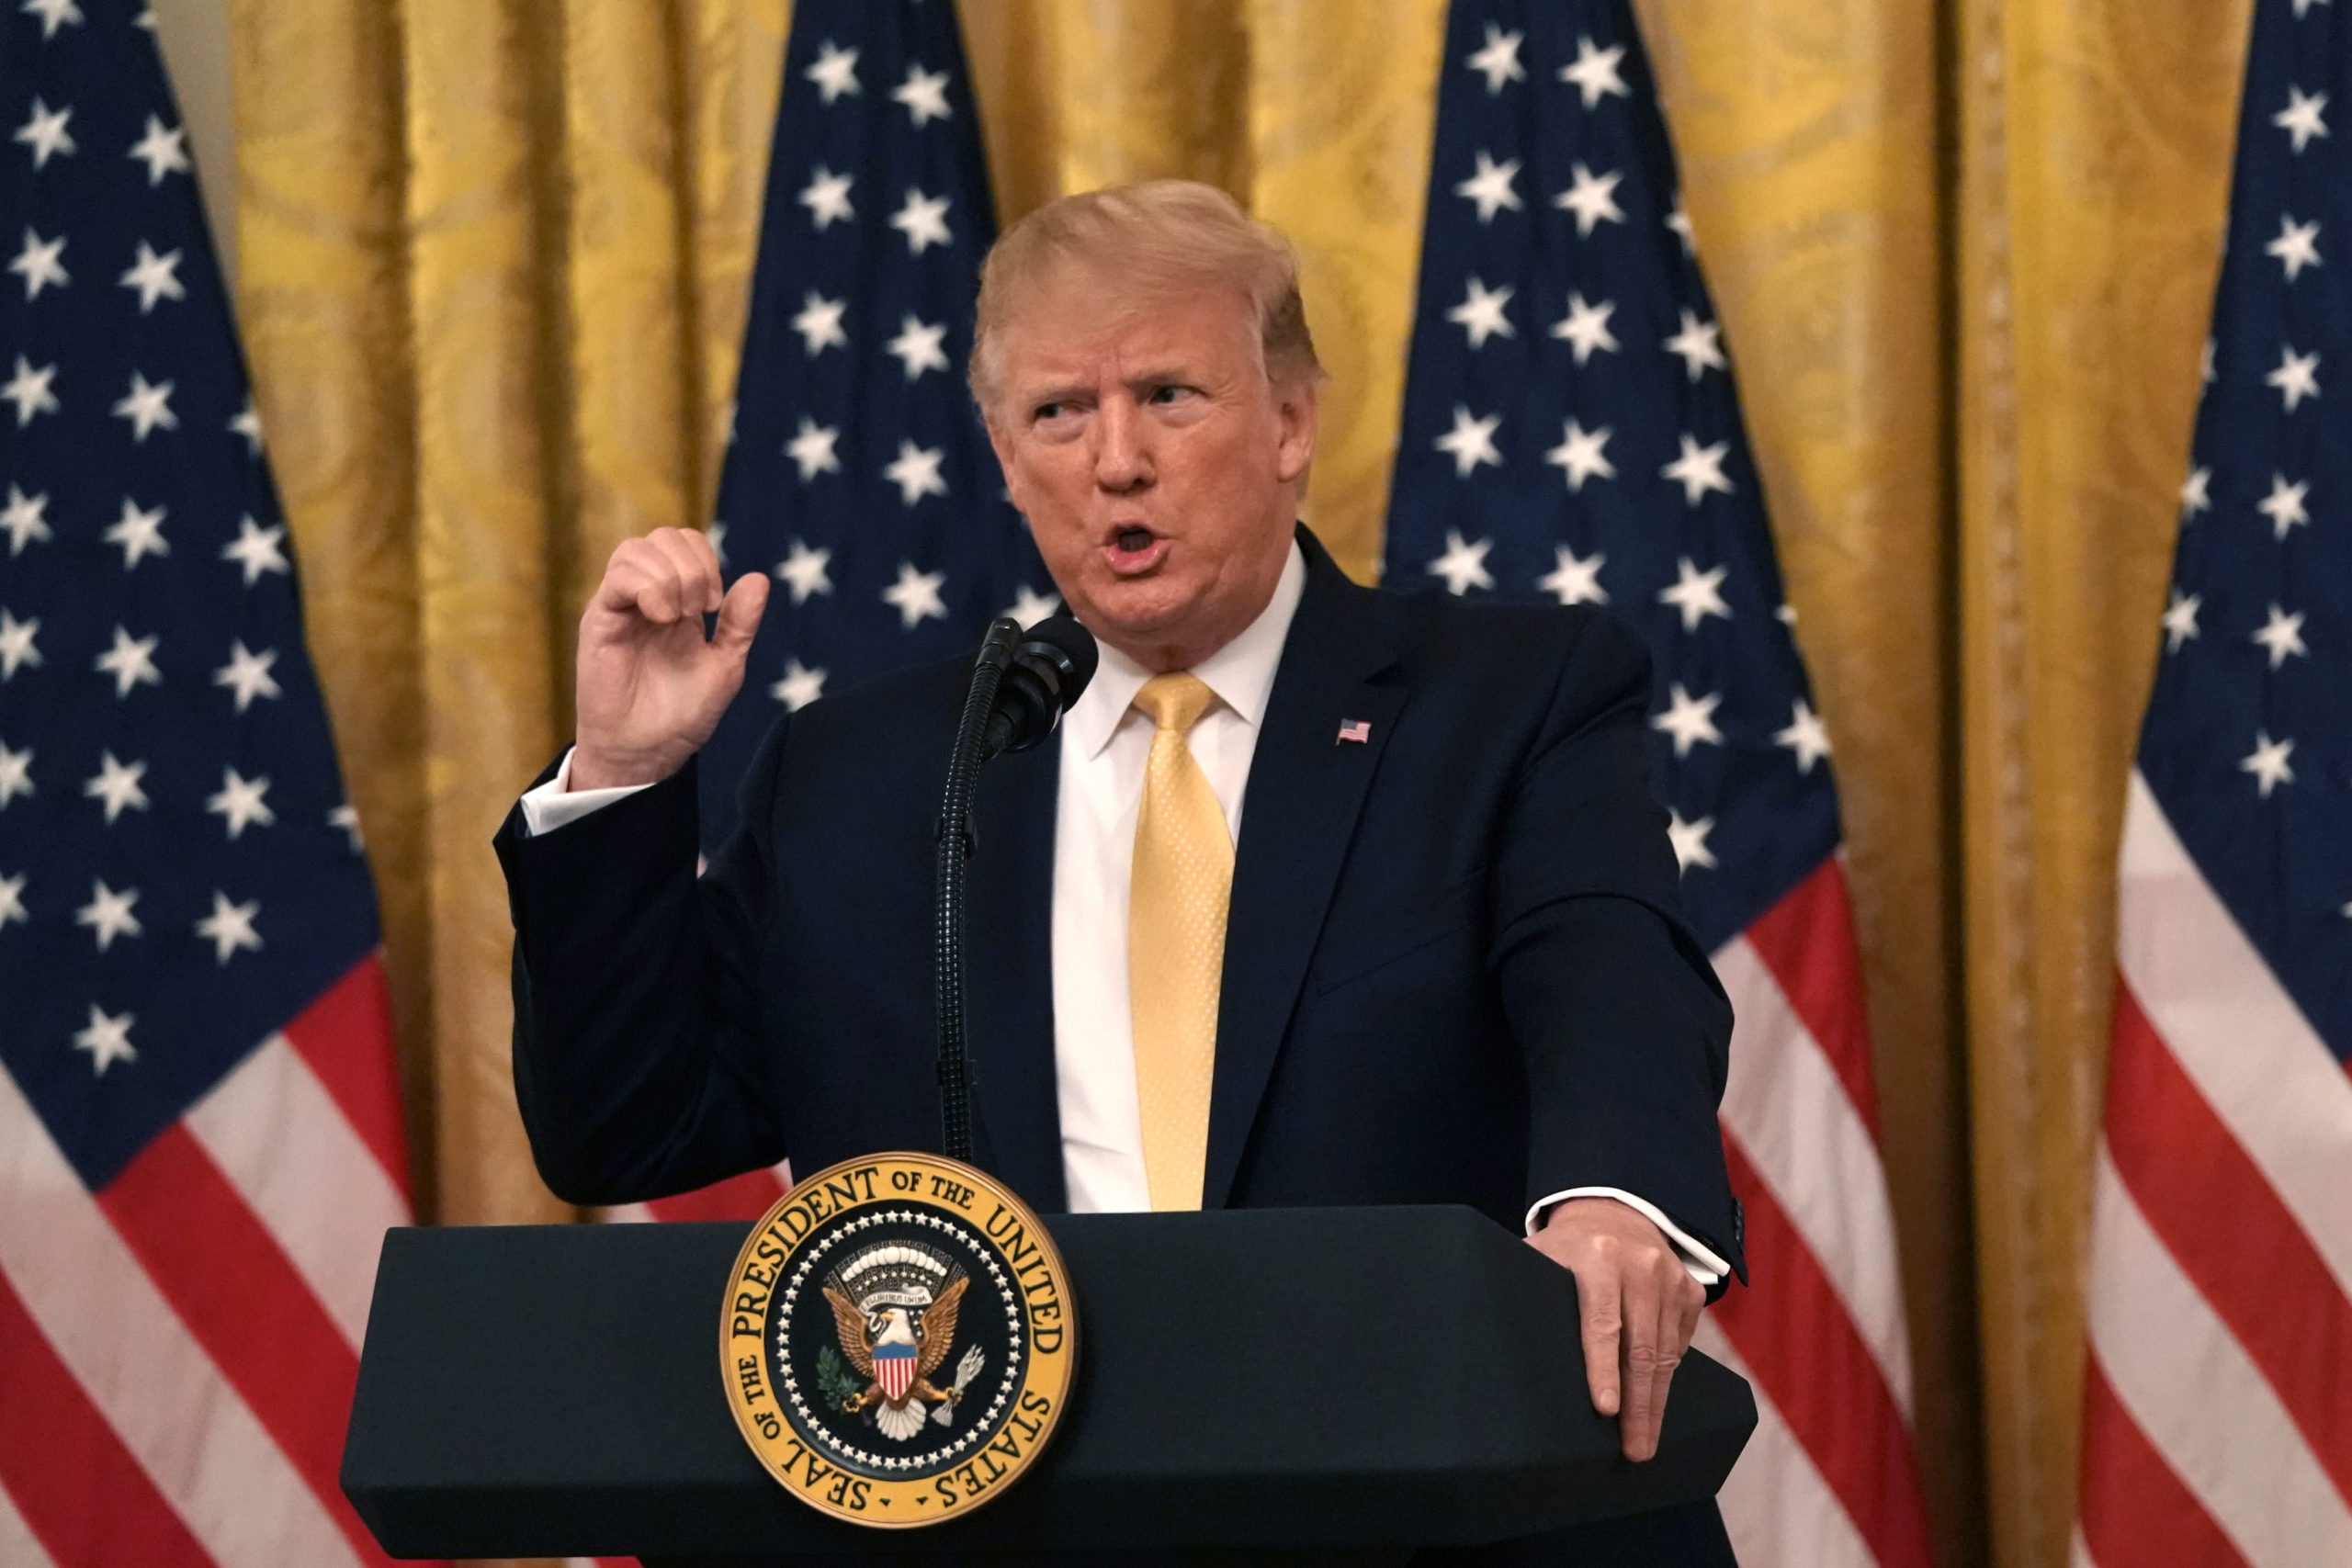 """WASHINGTON, DC - JULY 11: U.S. President Donald Trump speaks during a """"Presidential Social Media Summit"""" in the East Room of the White House July 11, 2019 in Washington, DC. President Trump hosted a group of his political allies to discuss """"social media."""" (Photo by Alex Wong/Getty Images)"""